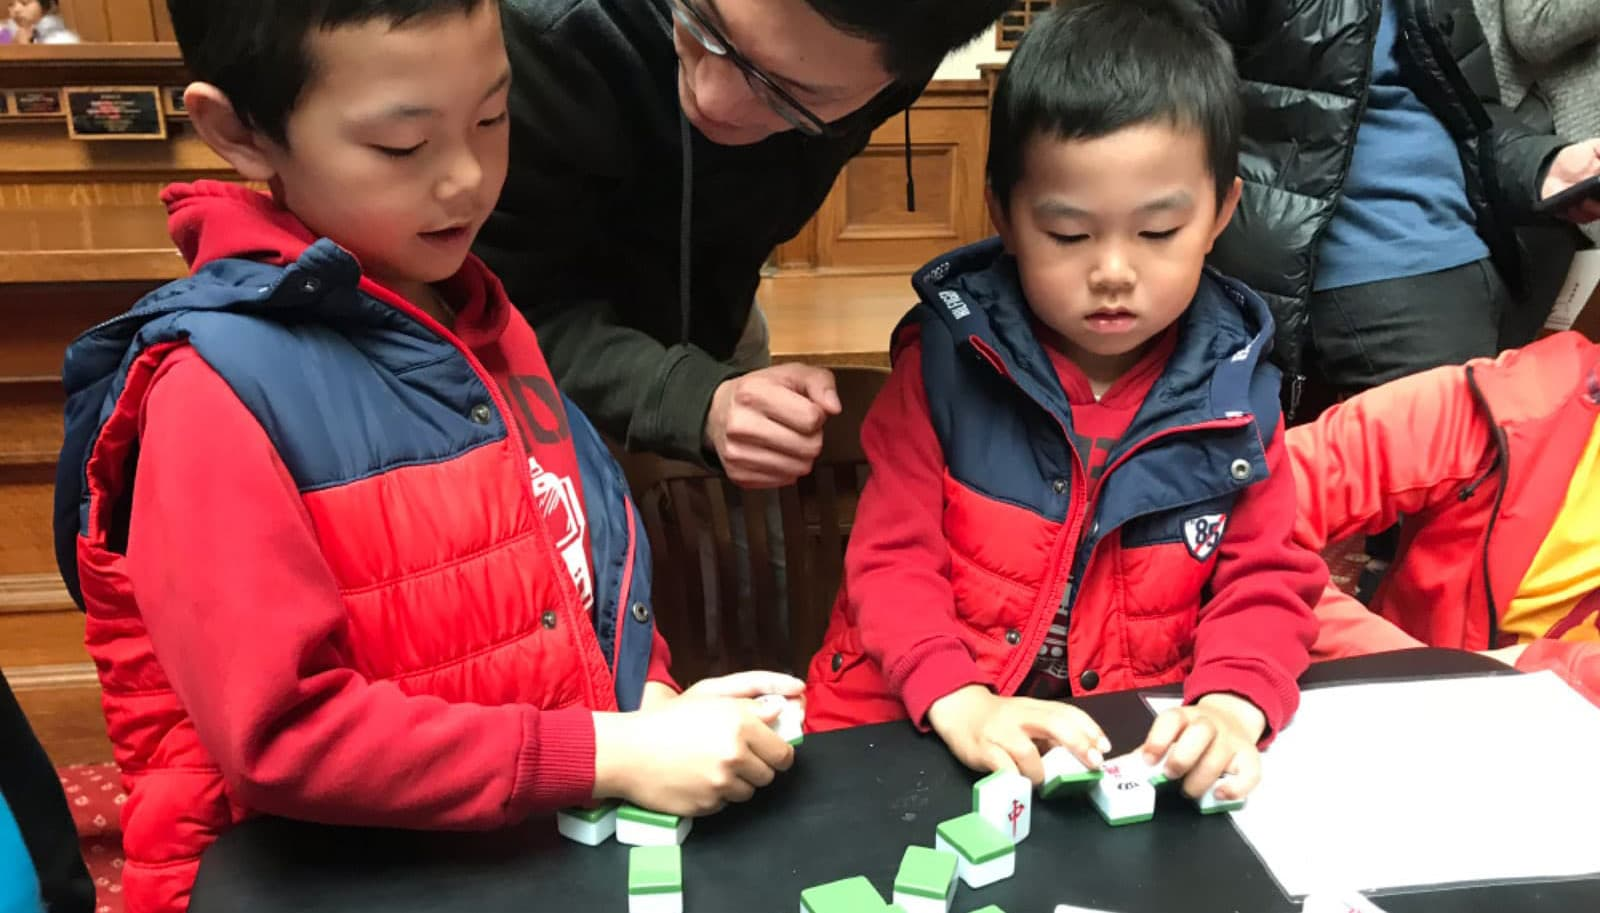 Two young boys learn mahjong at the lunar new year celebration at the San Mateo County History Museum